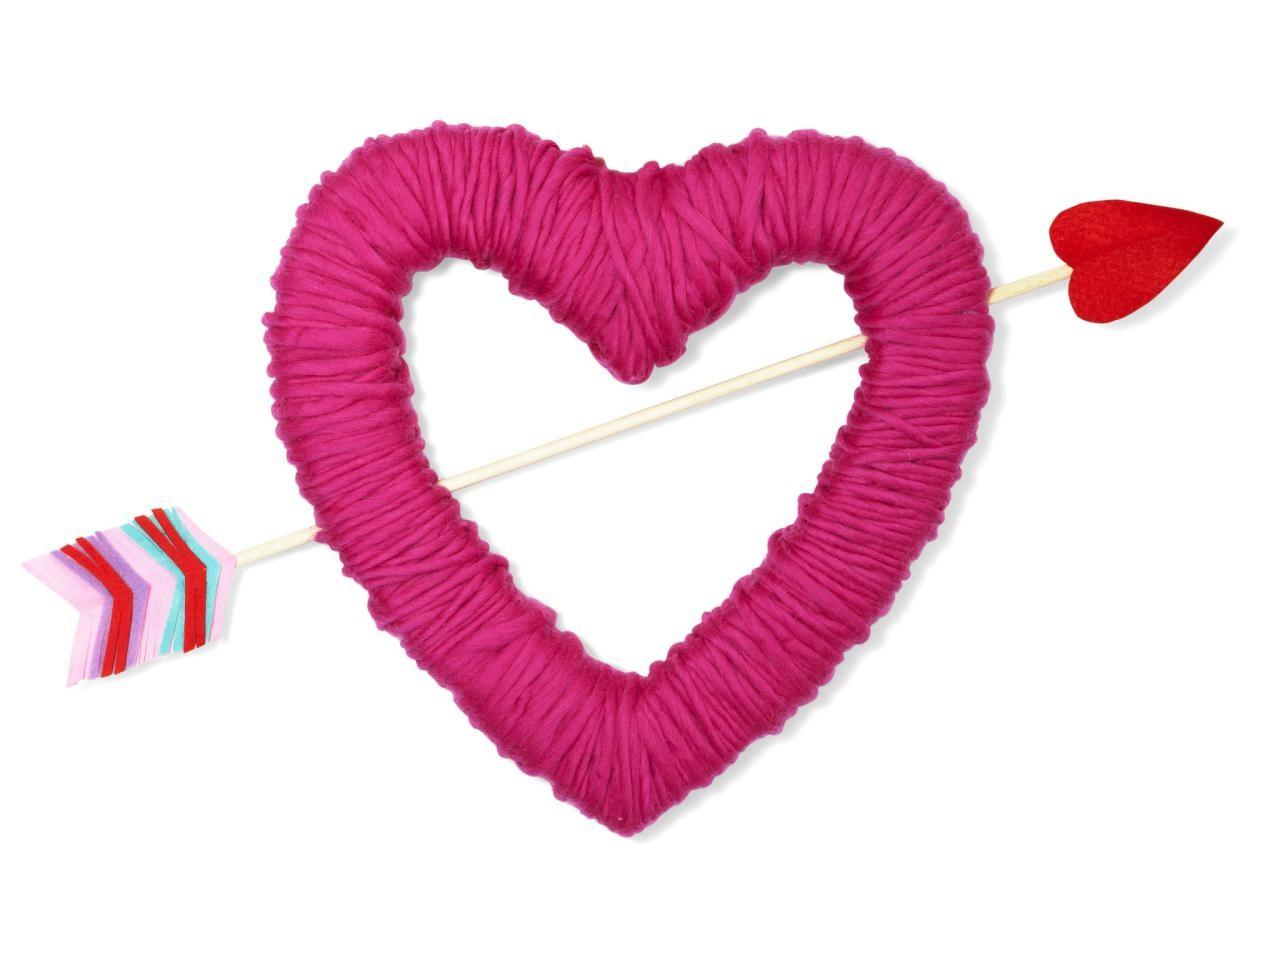 Diy Valentine Gifts Easy Crafts Homemade Decorating